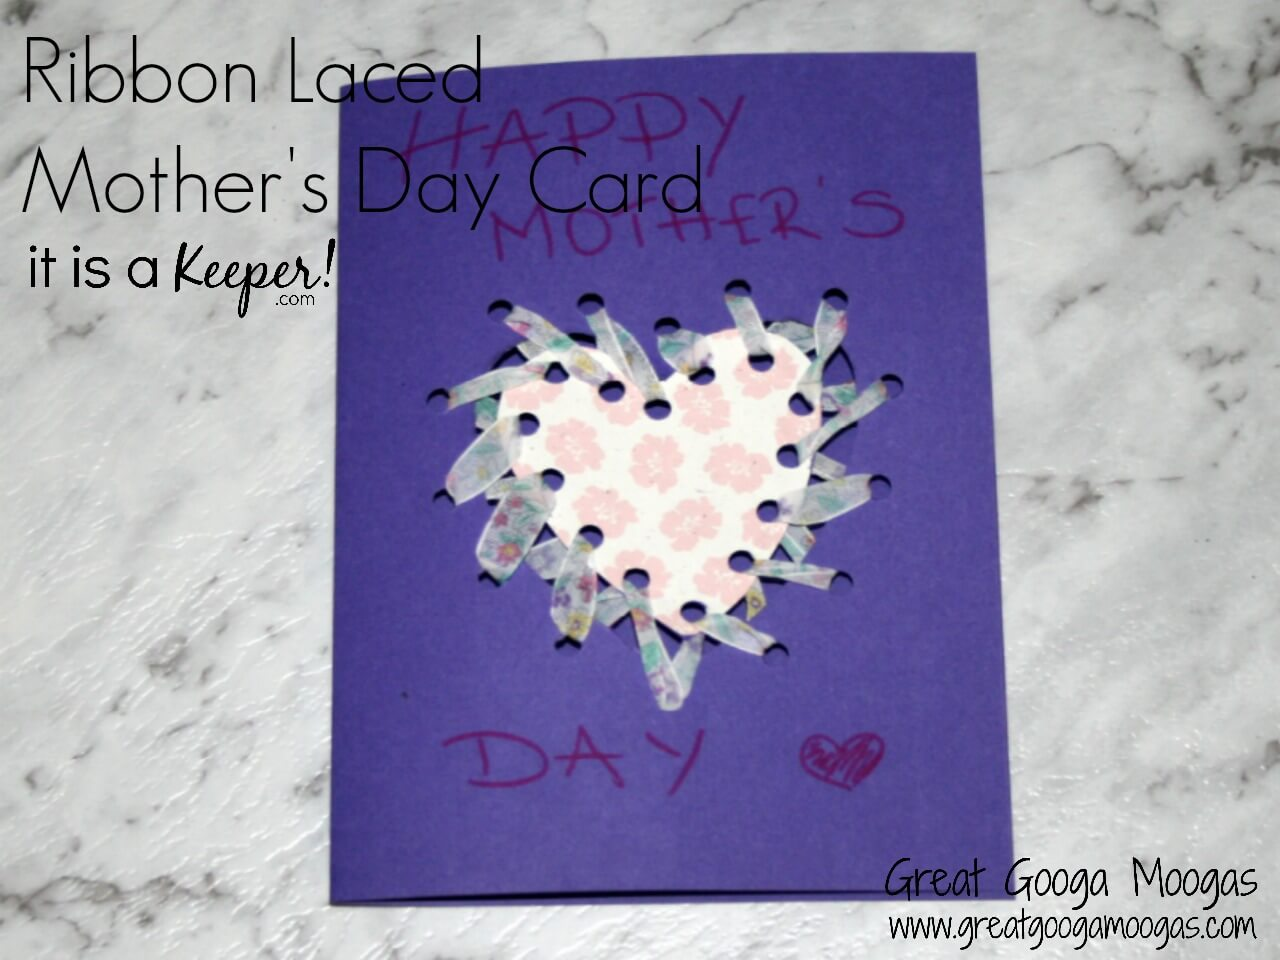 This Ribbon Laced Mother's Day Card is an easy, kid friendly project